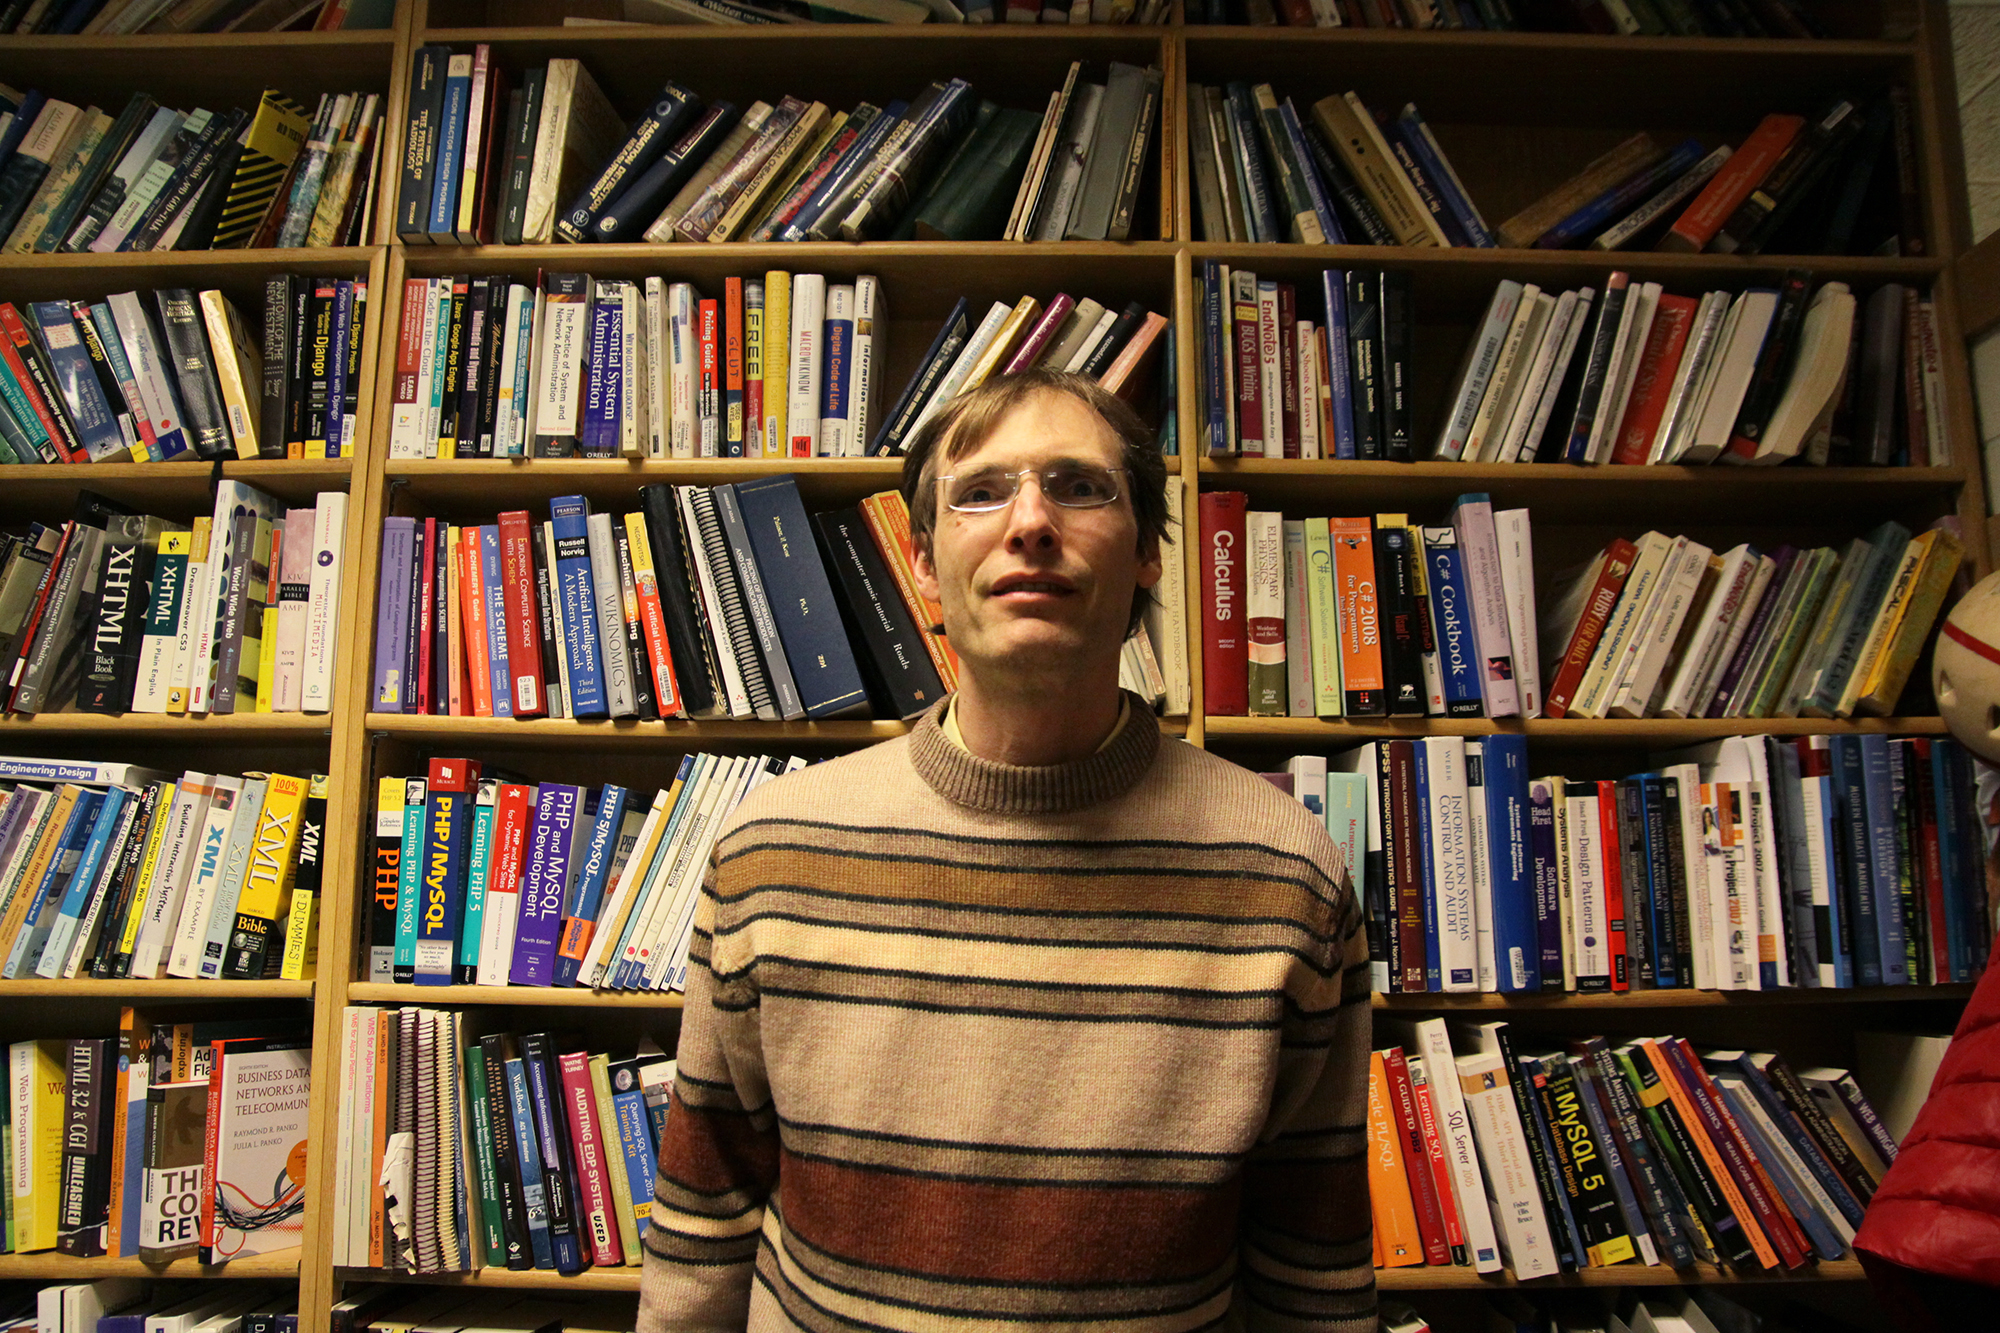 Kent Palmer stands in front of a large bookshelf full of books